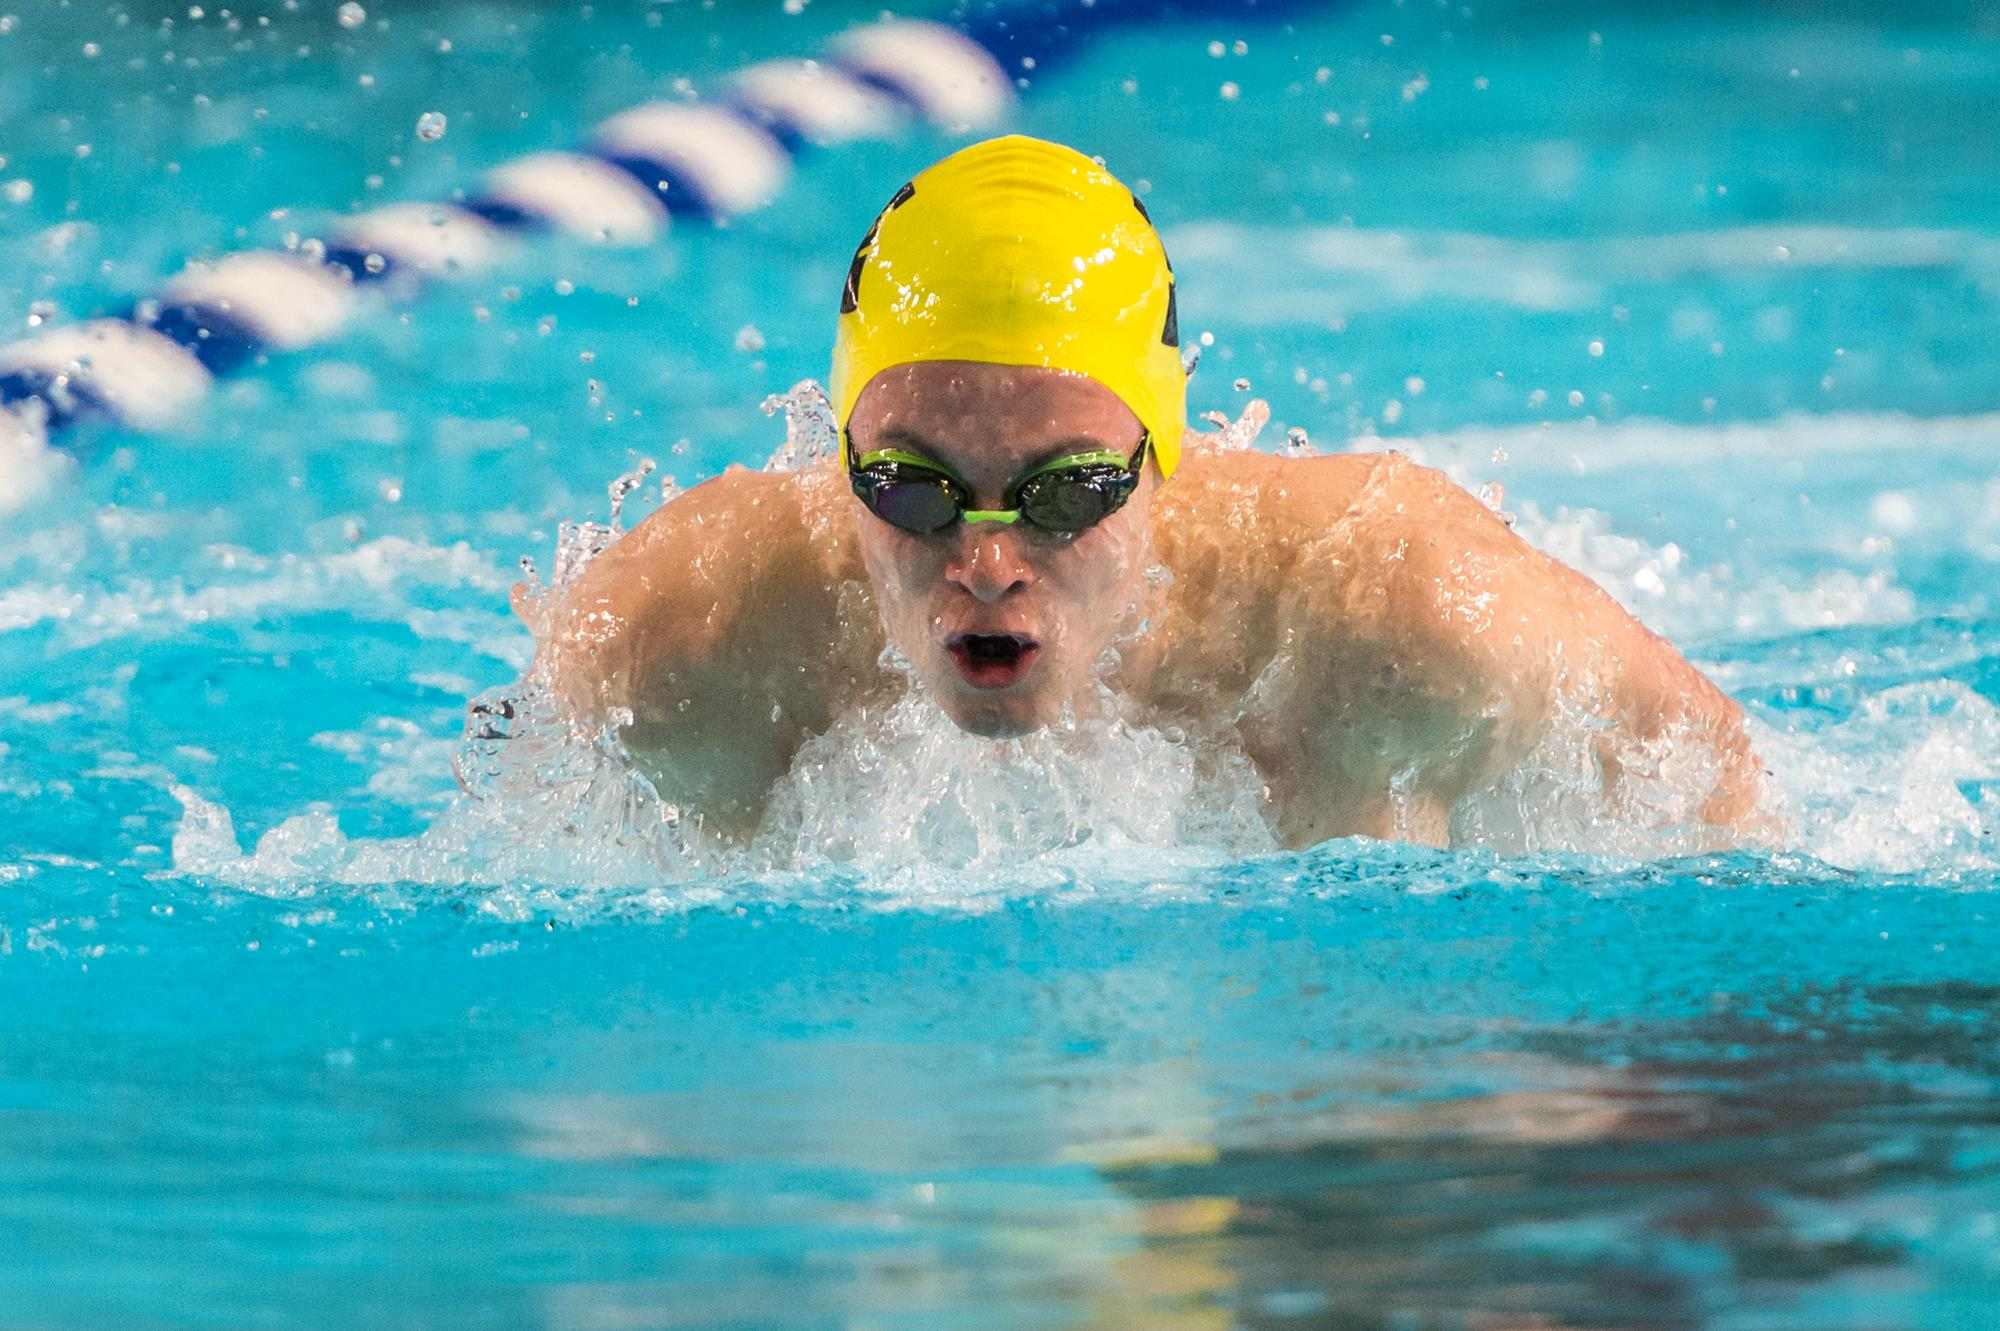 Lukas Wormald Swimming toward camera